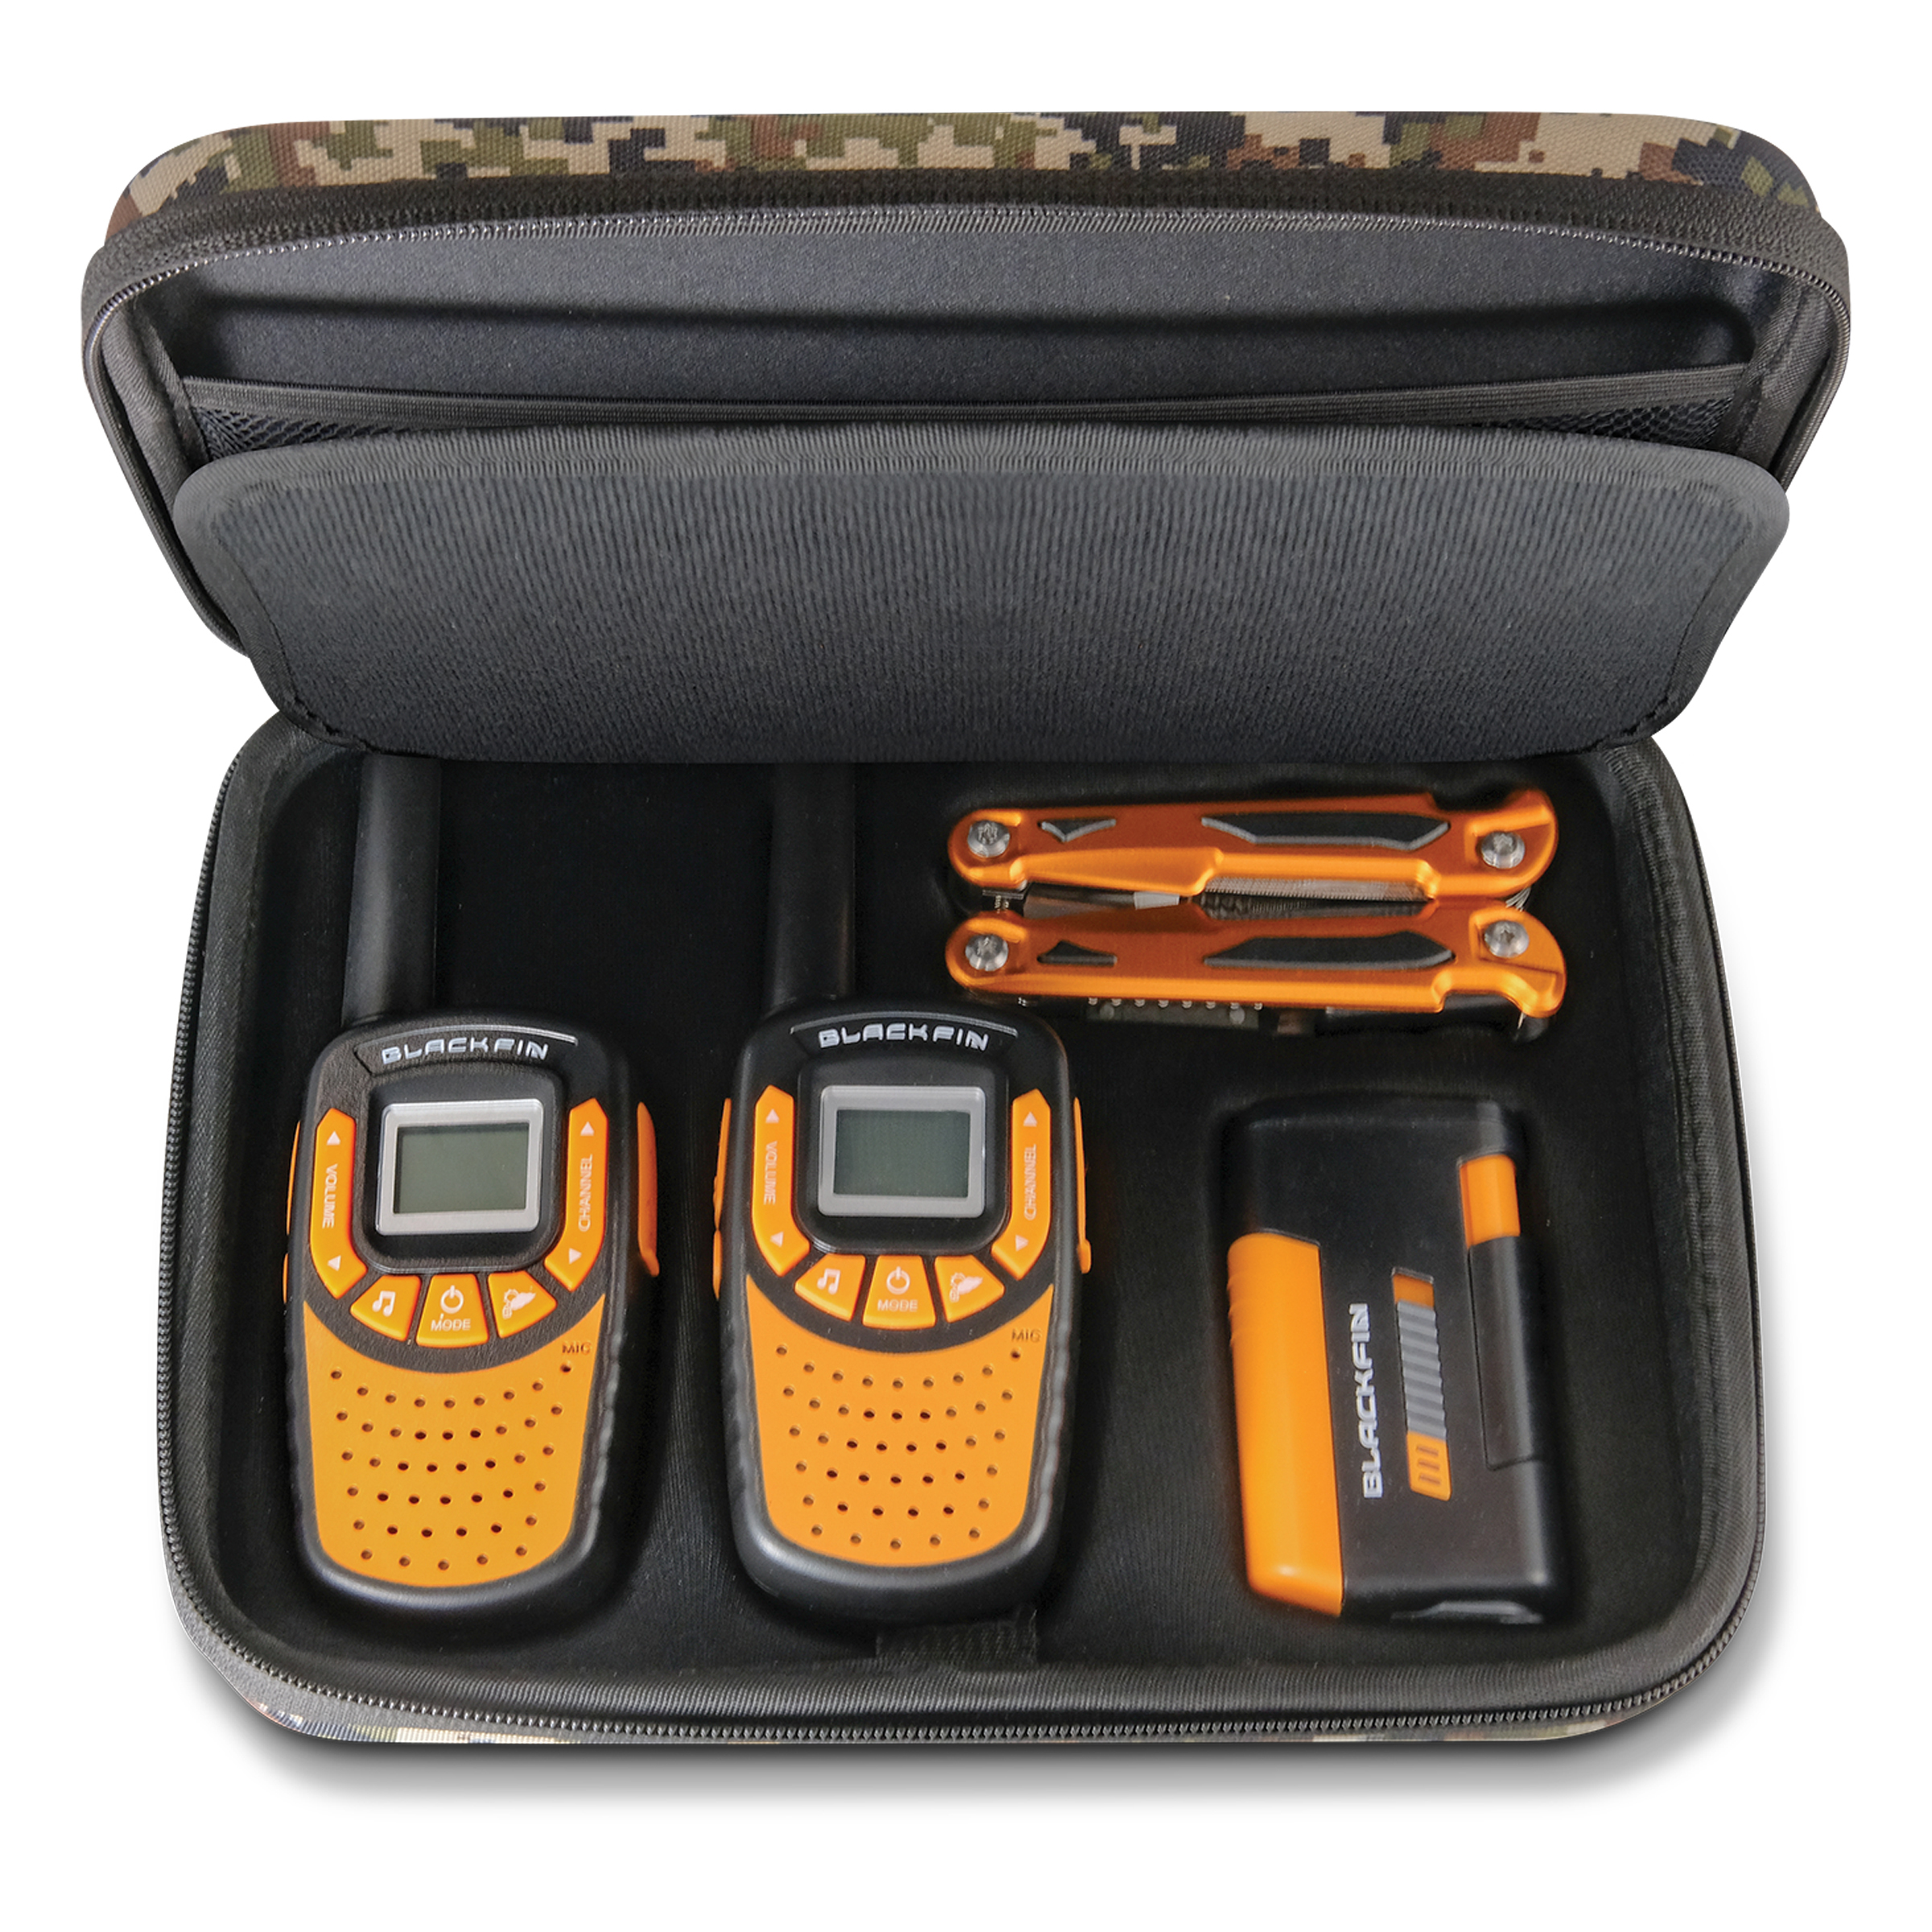 WALKIE TALKIE SURVIVAL KIT by Black Fin®